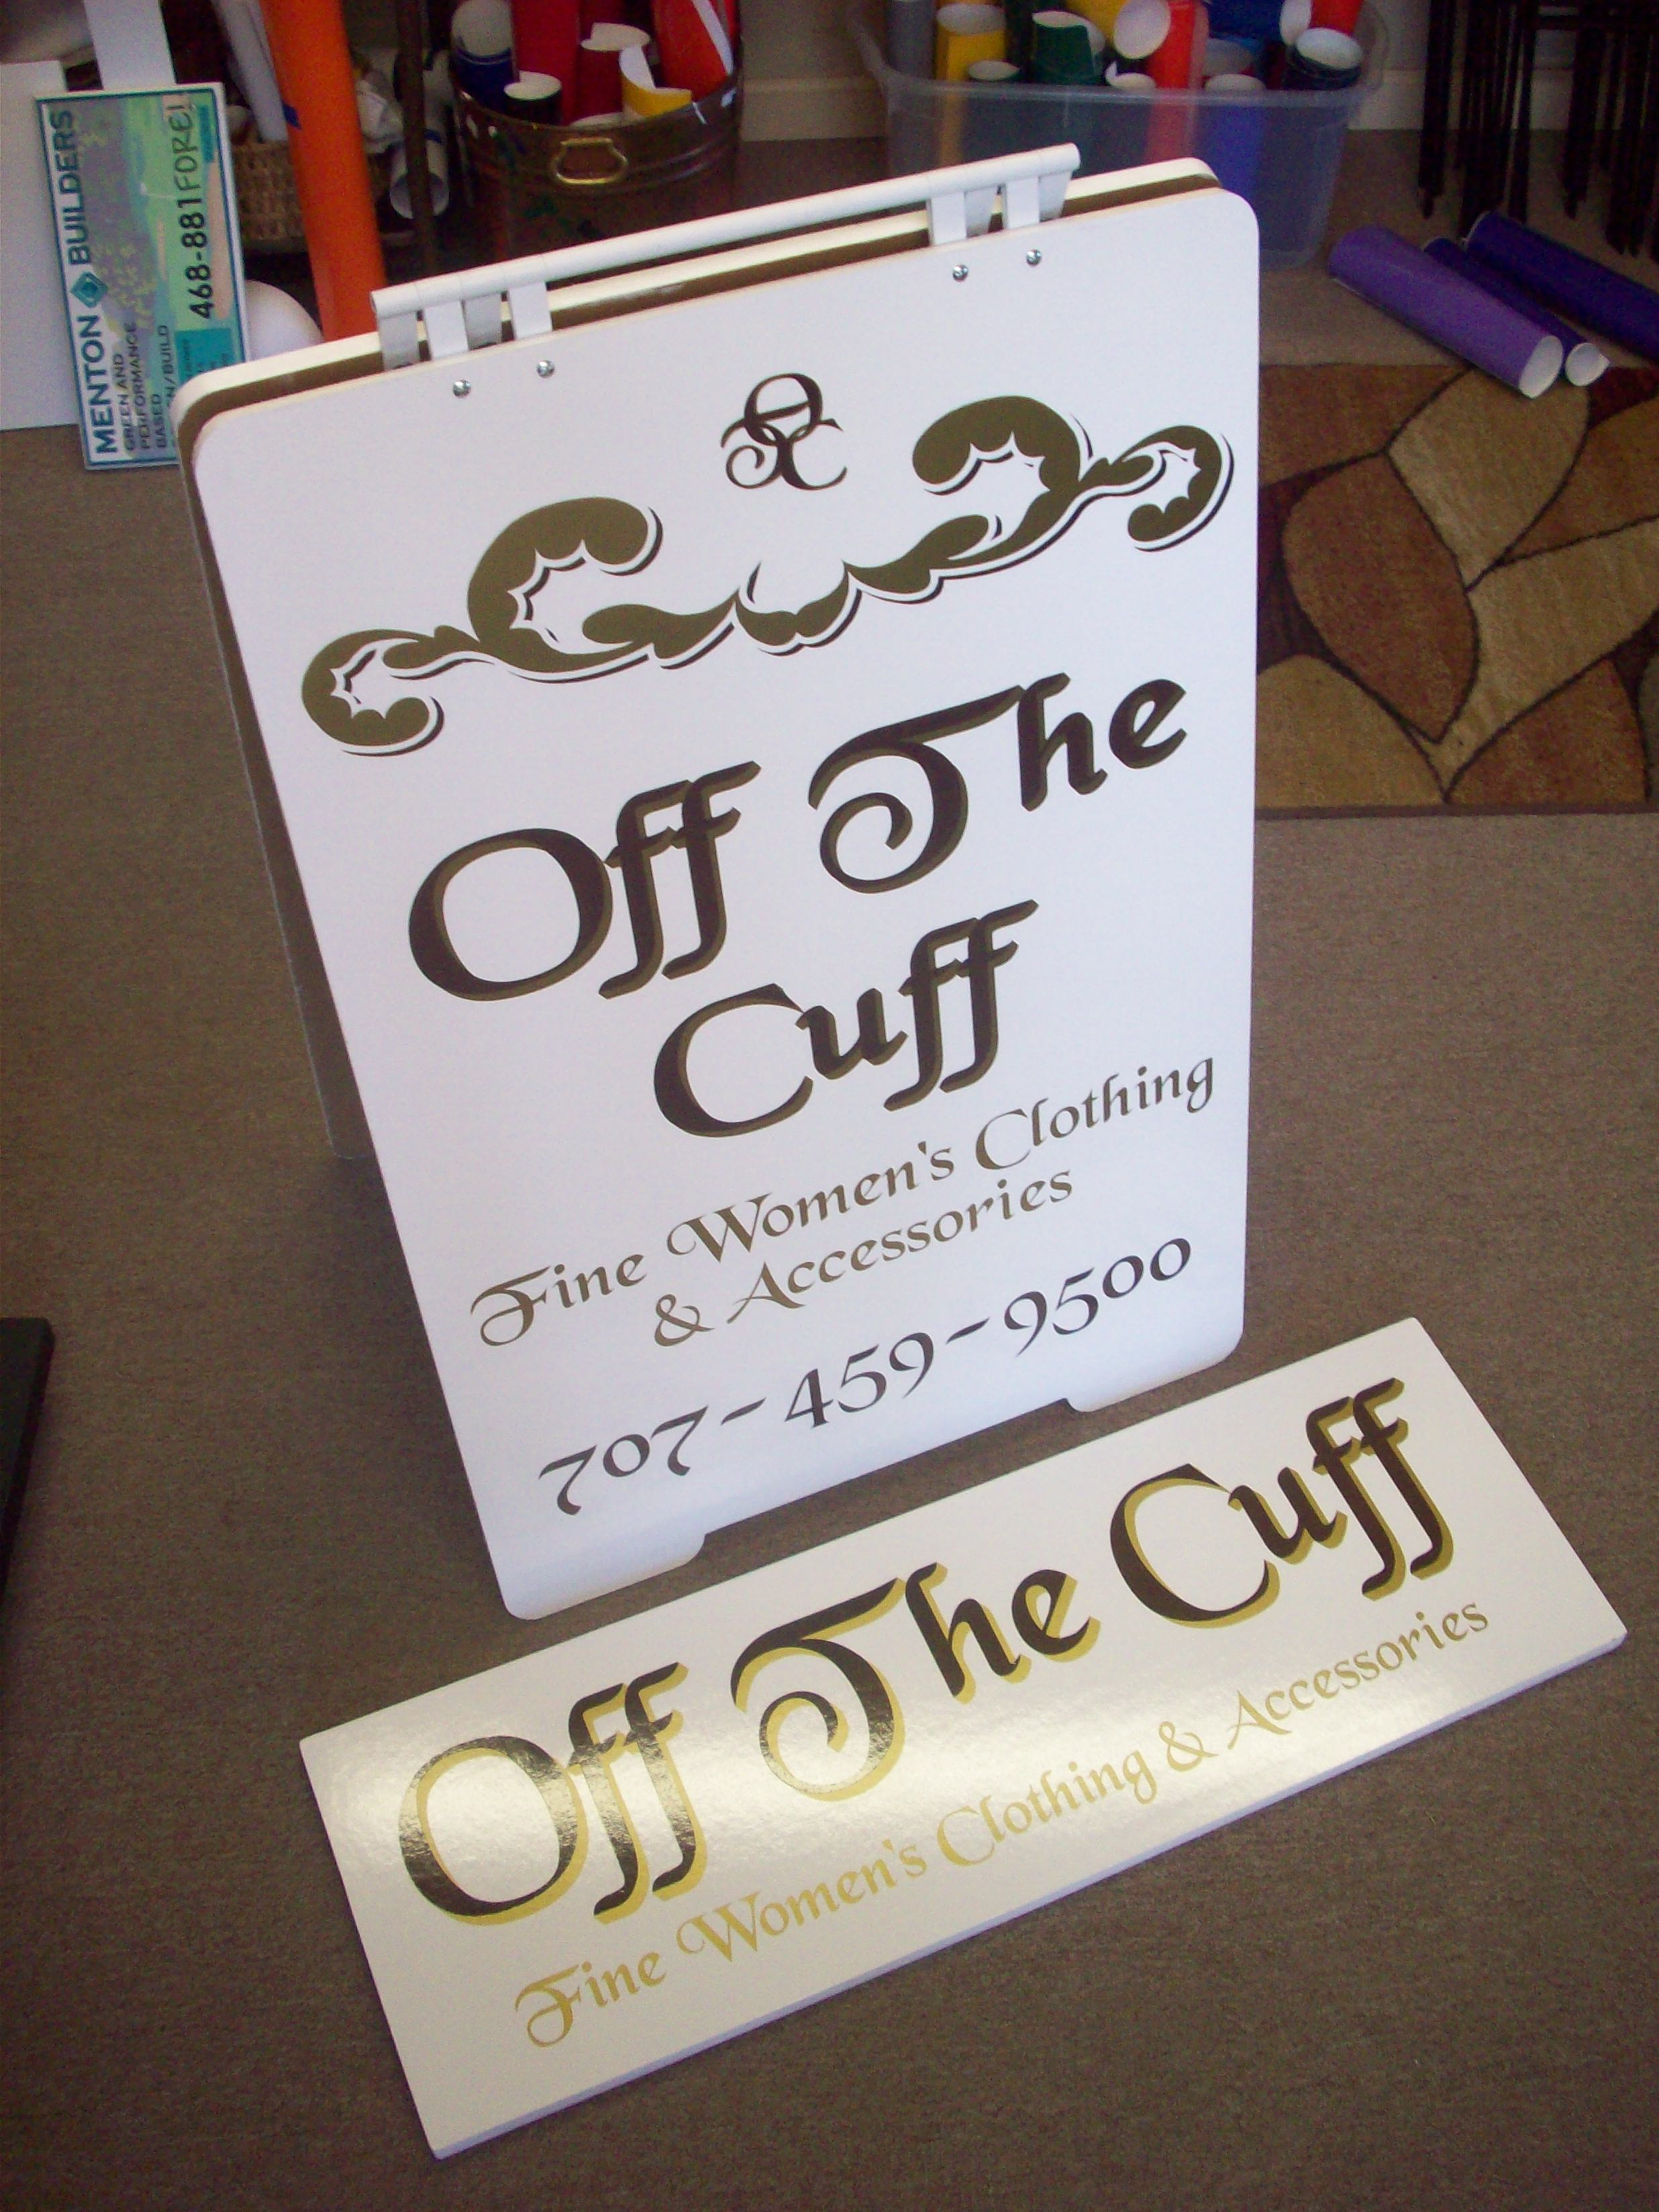 Off the Cuff - Willits